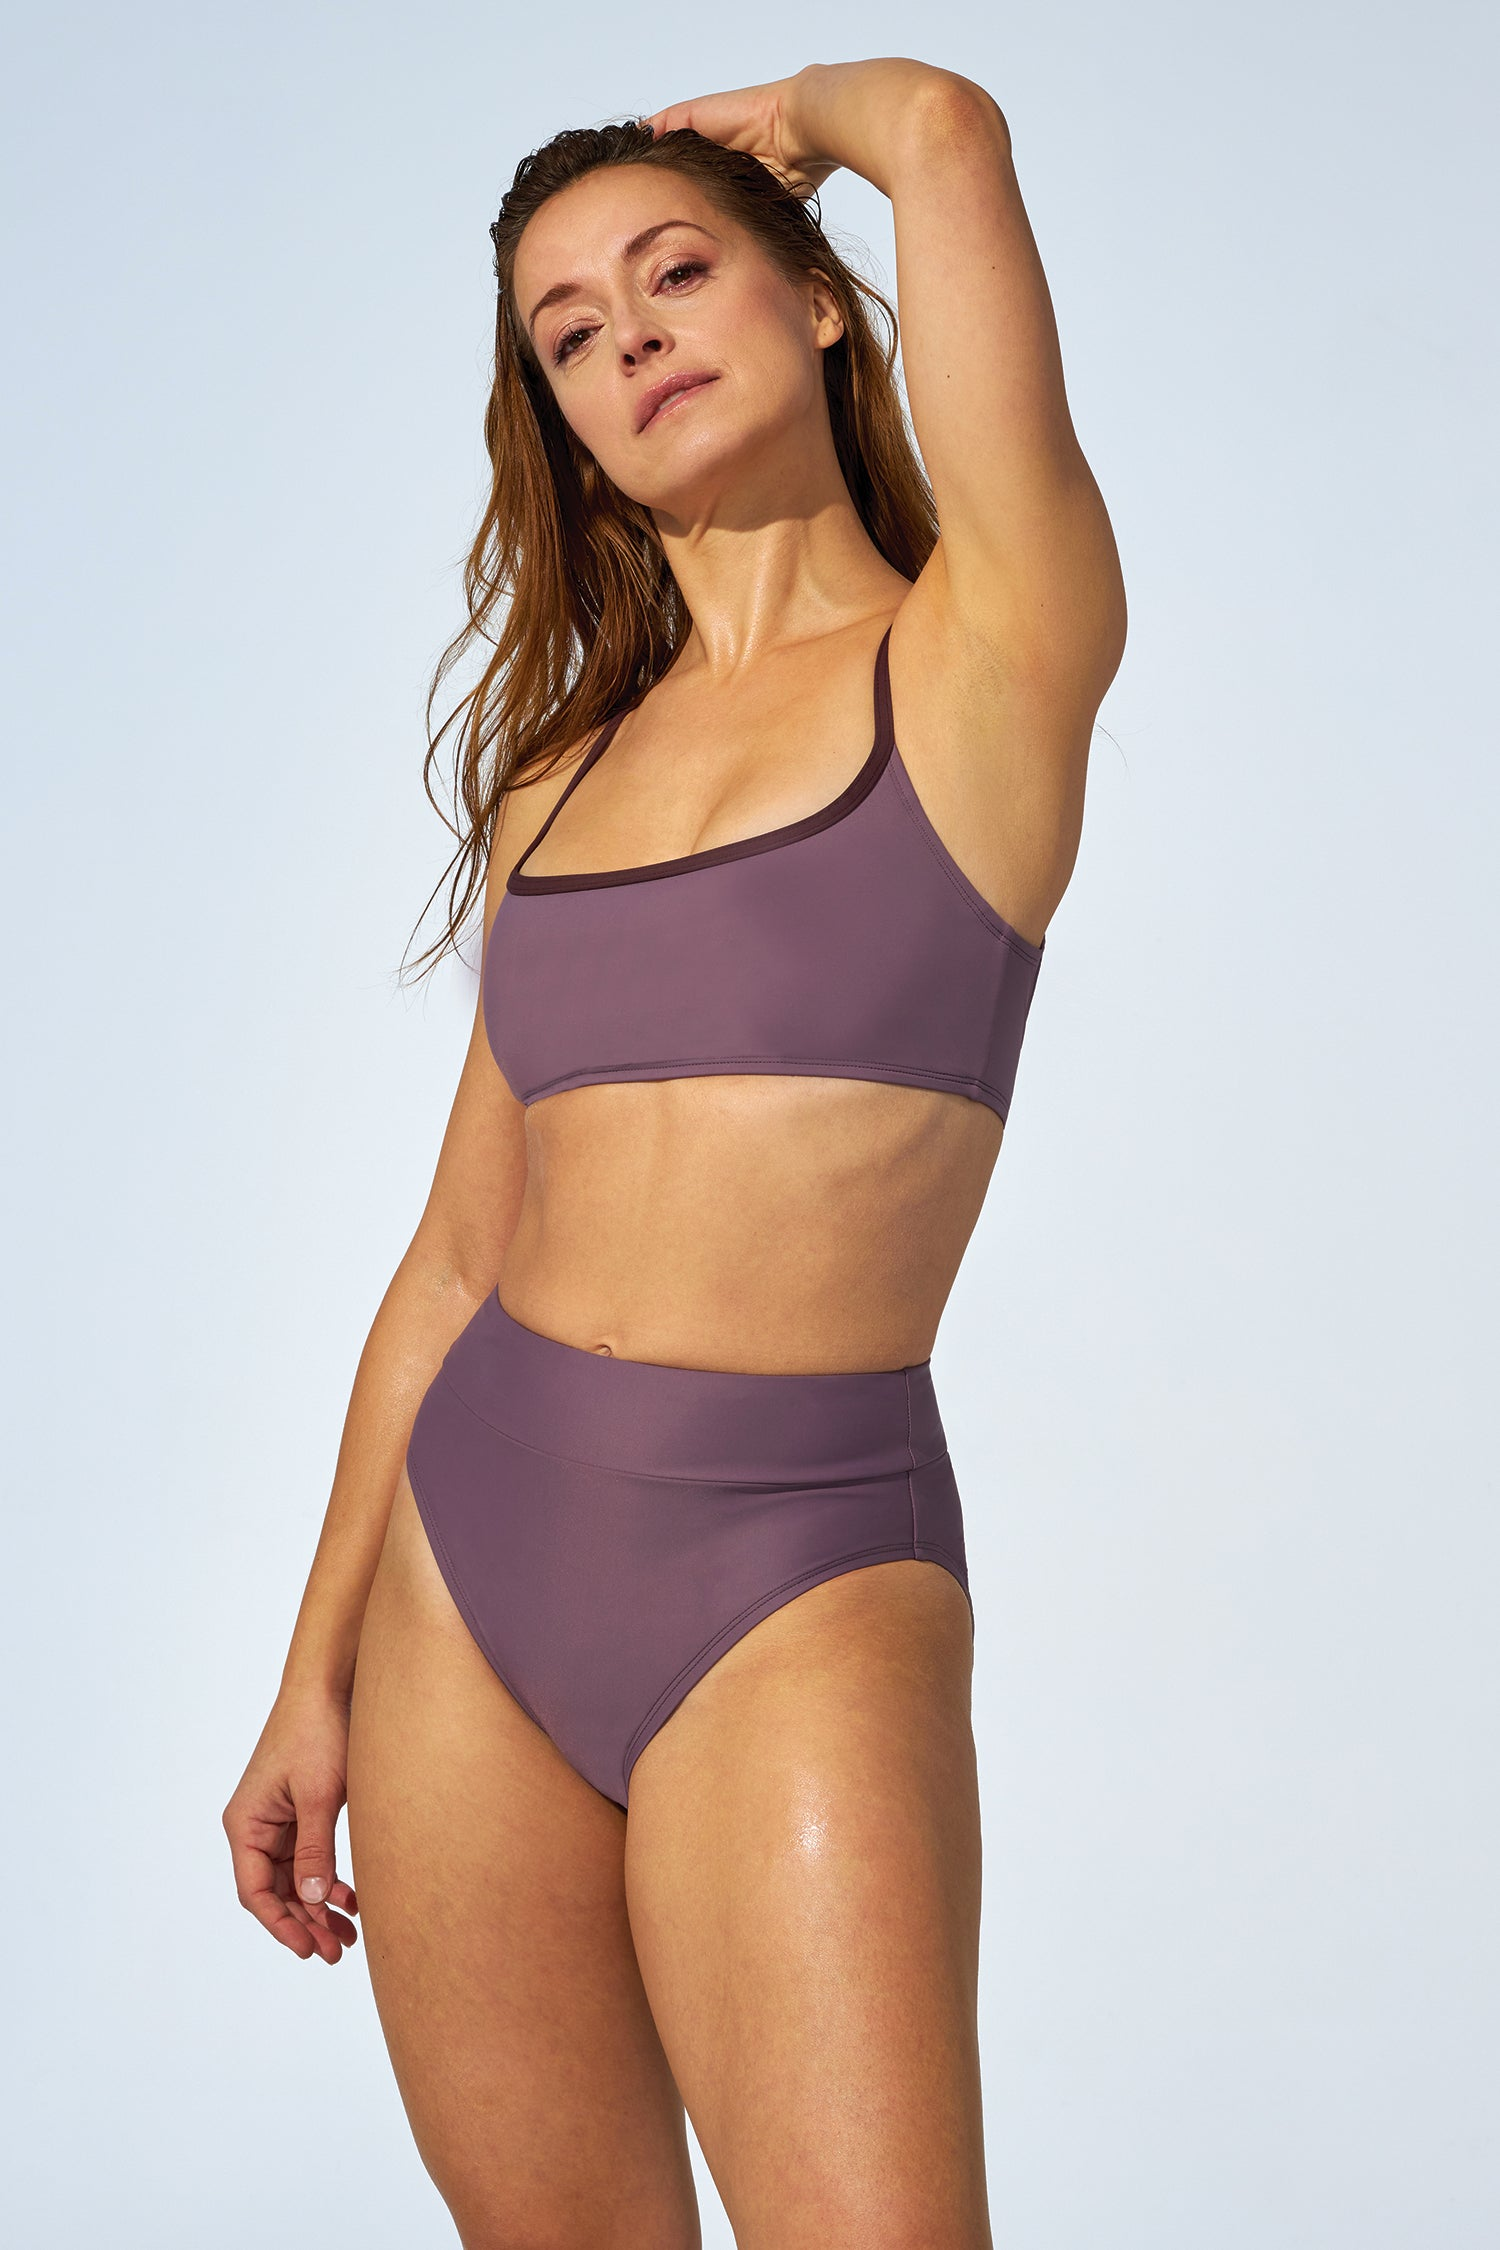 ANALIE – High waist bikini bottom in soft purple